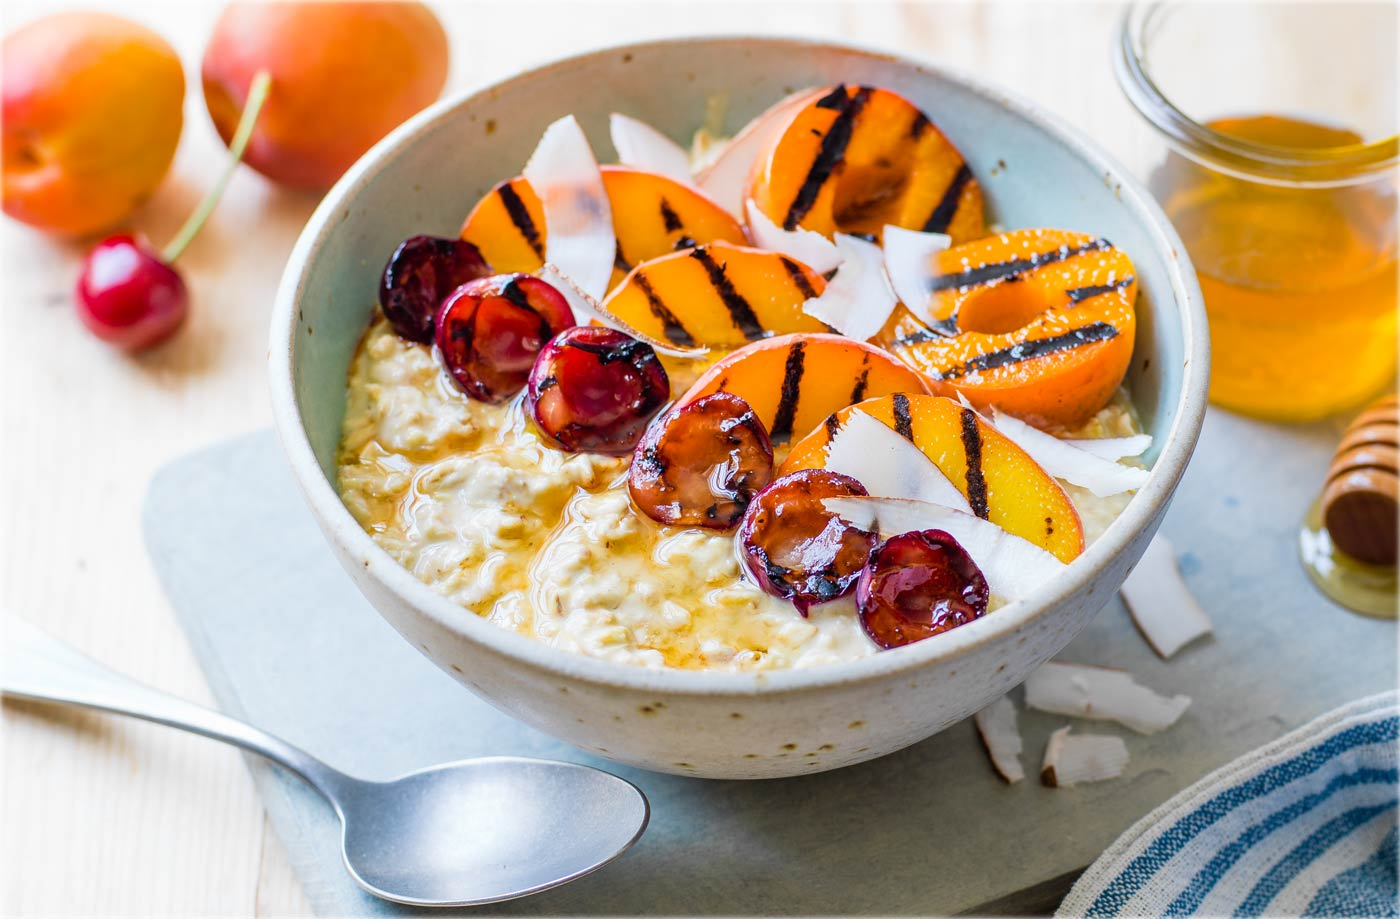 Griddled summer fruits with oats